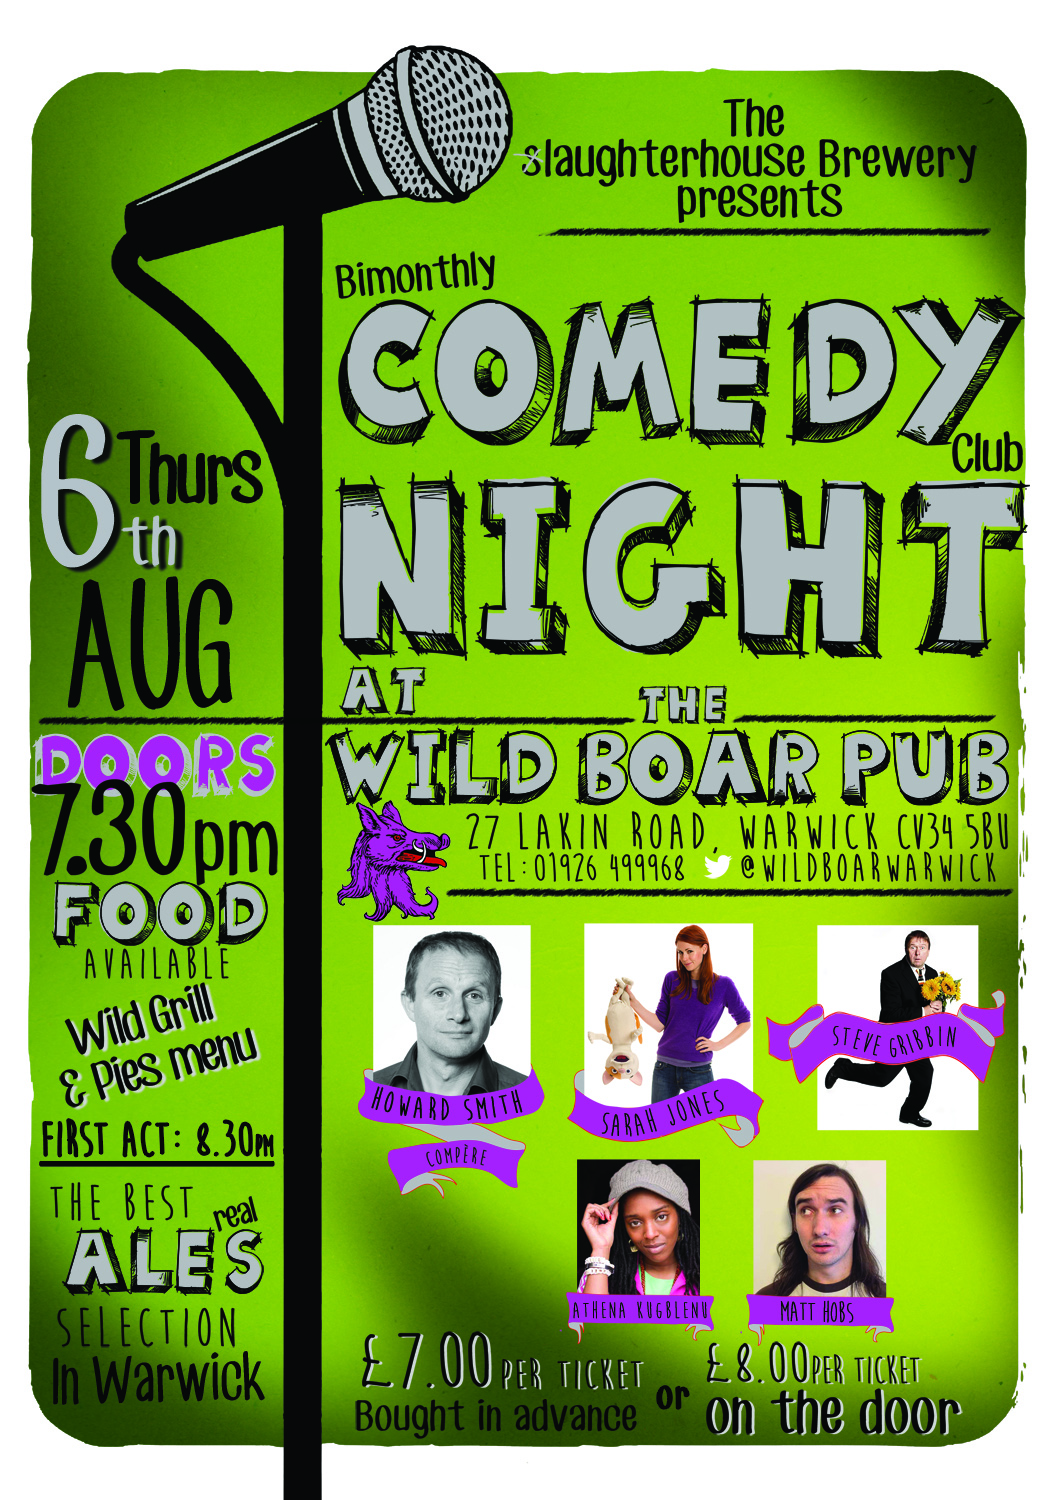 comedy night at the wild boar 6th Aug